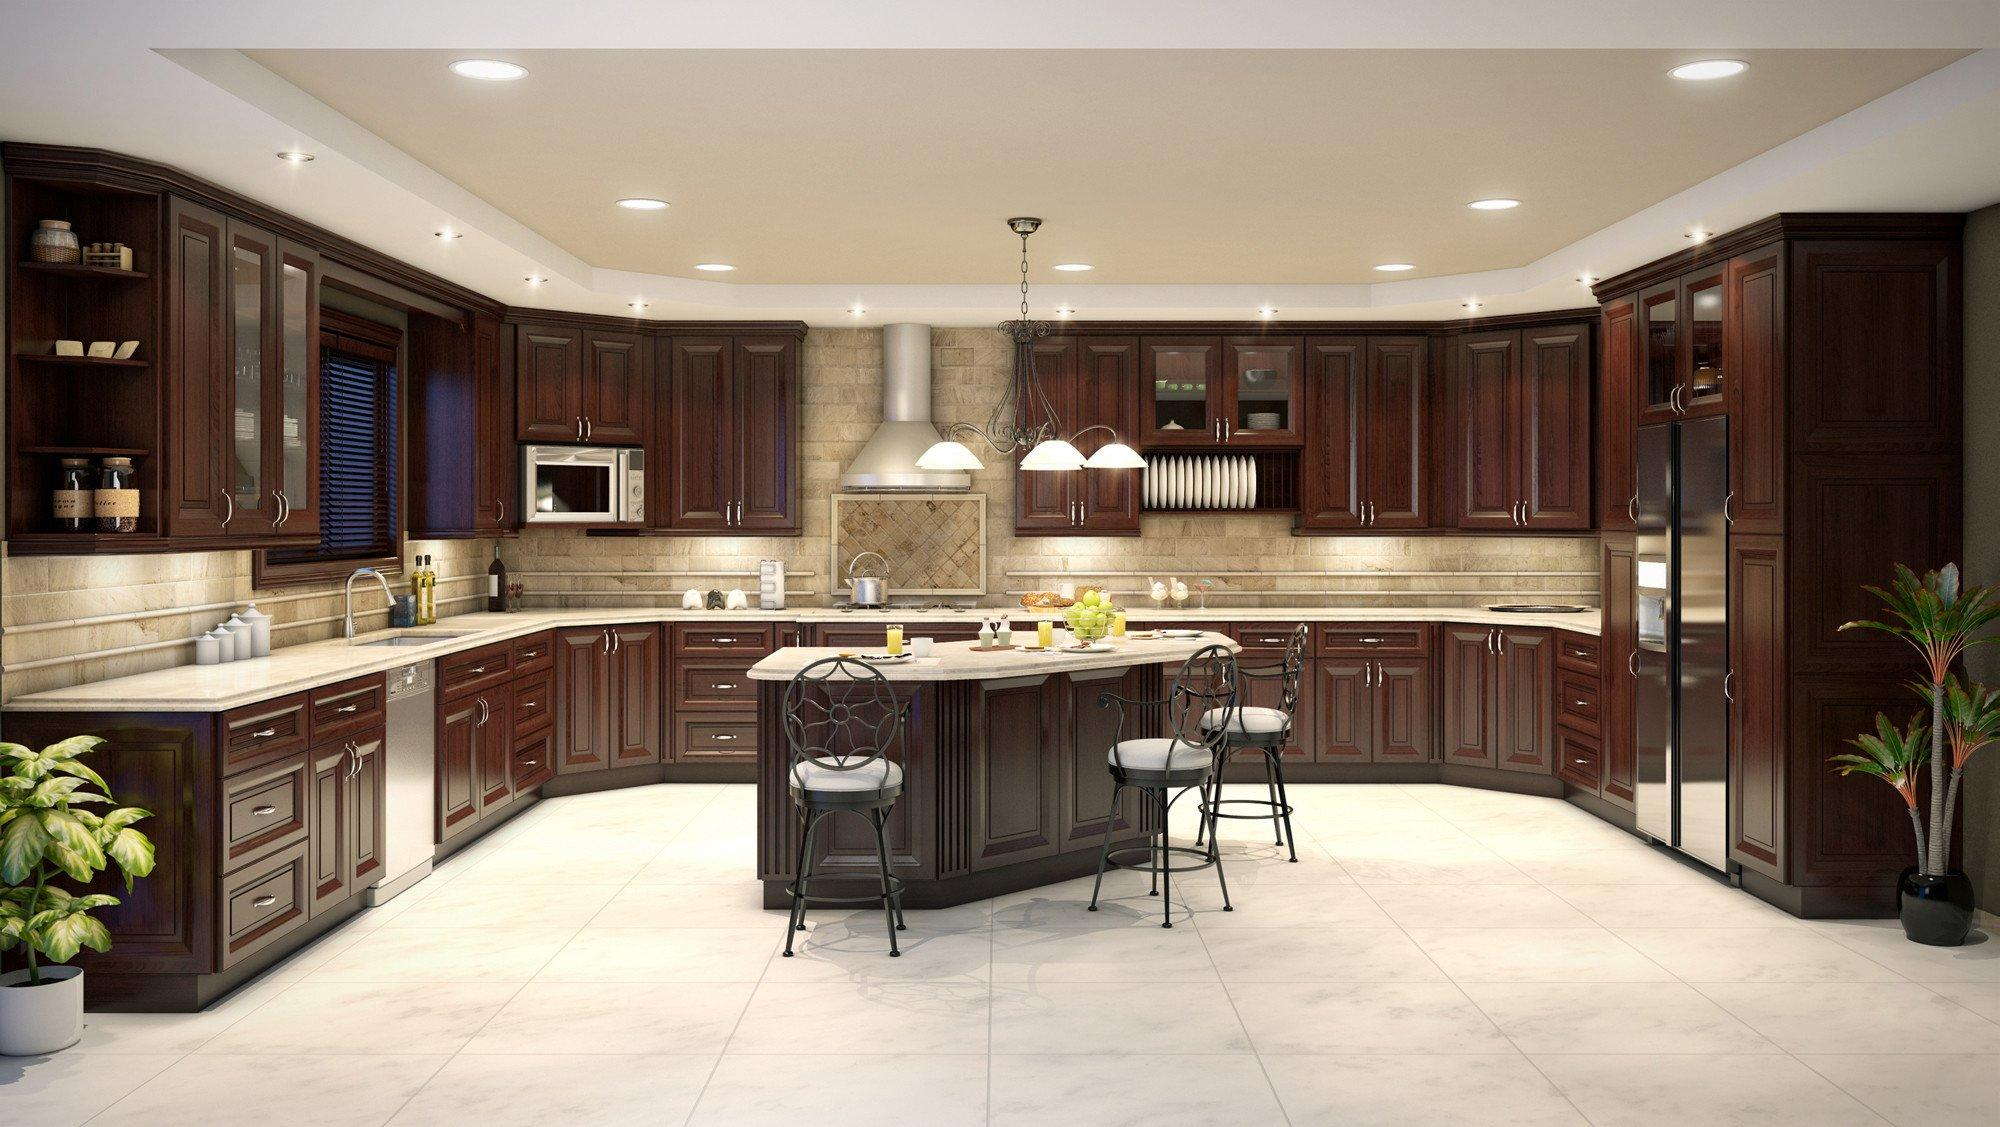 Countertops & Cabinets by Max Granite image 2